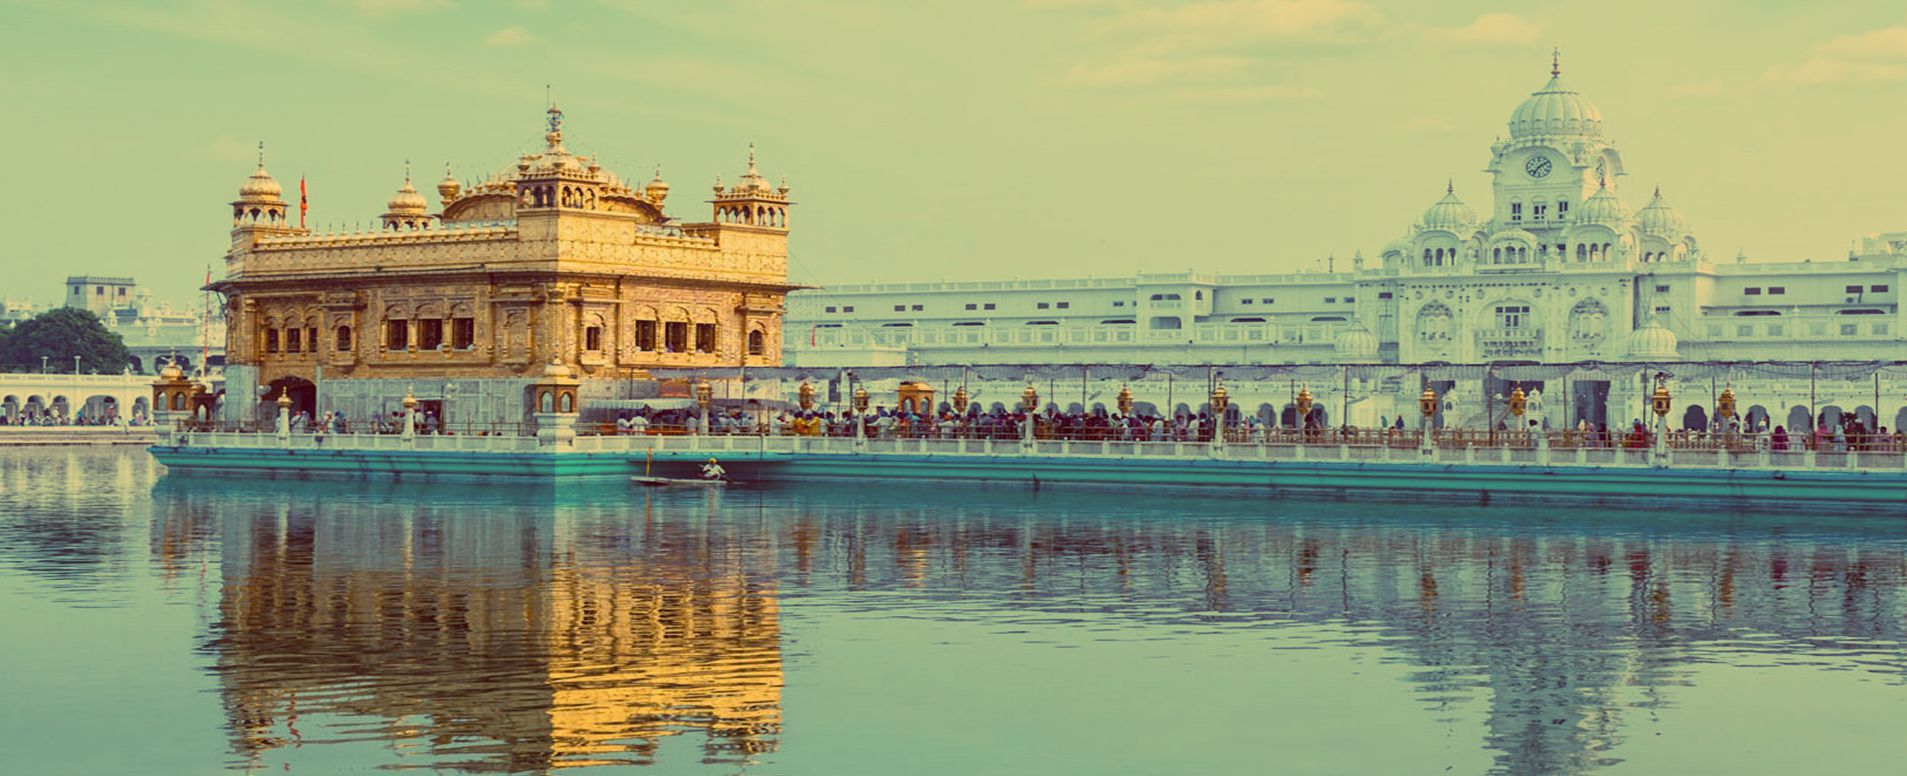 Travel to India in August